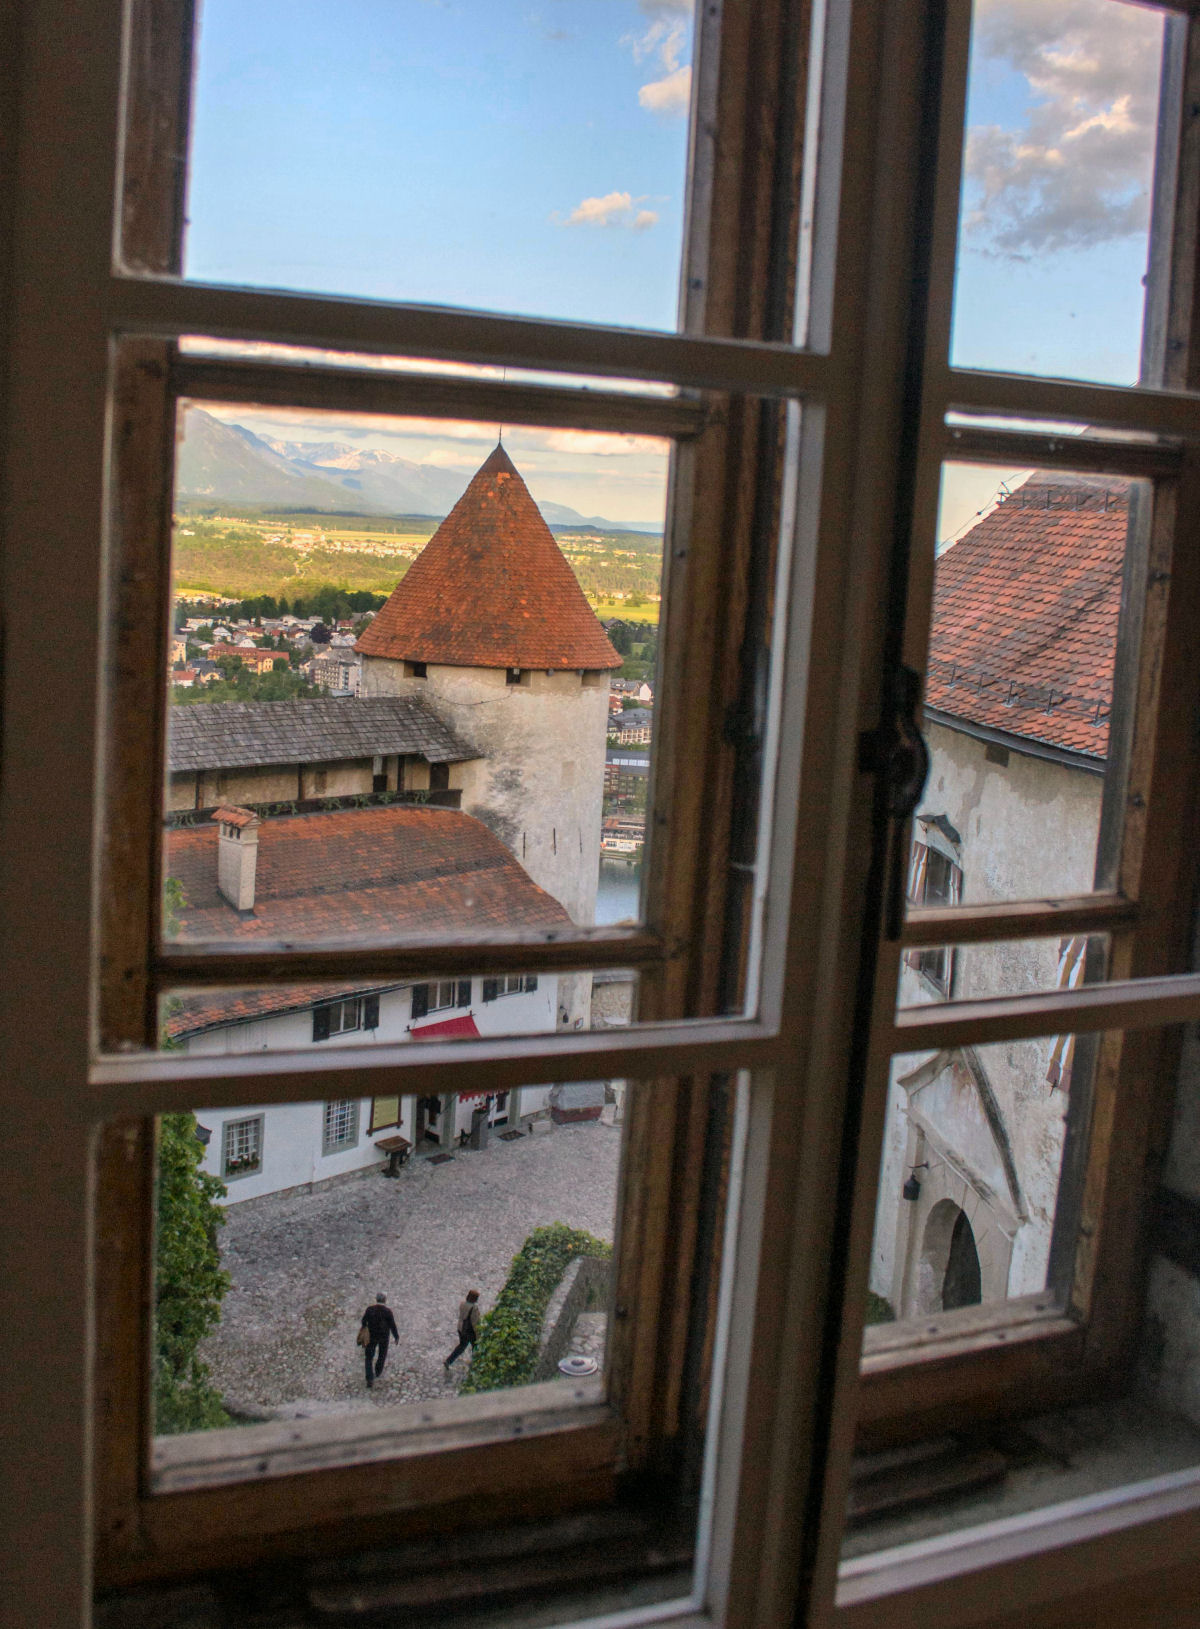 Another view from the window in Bled castle